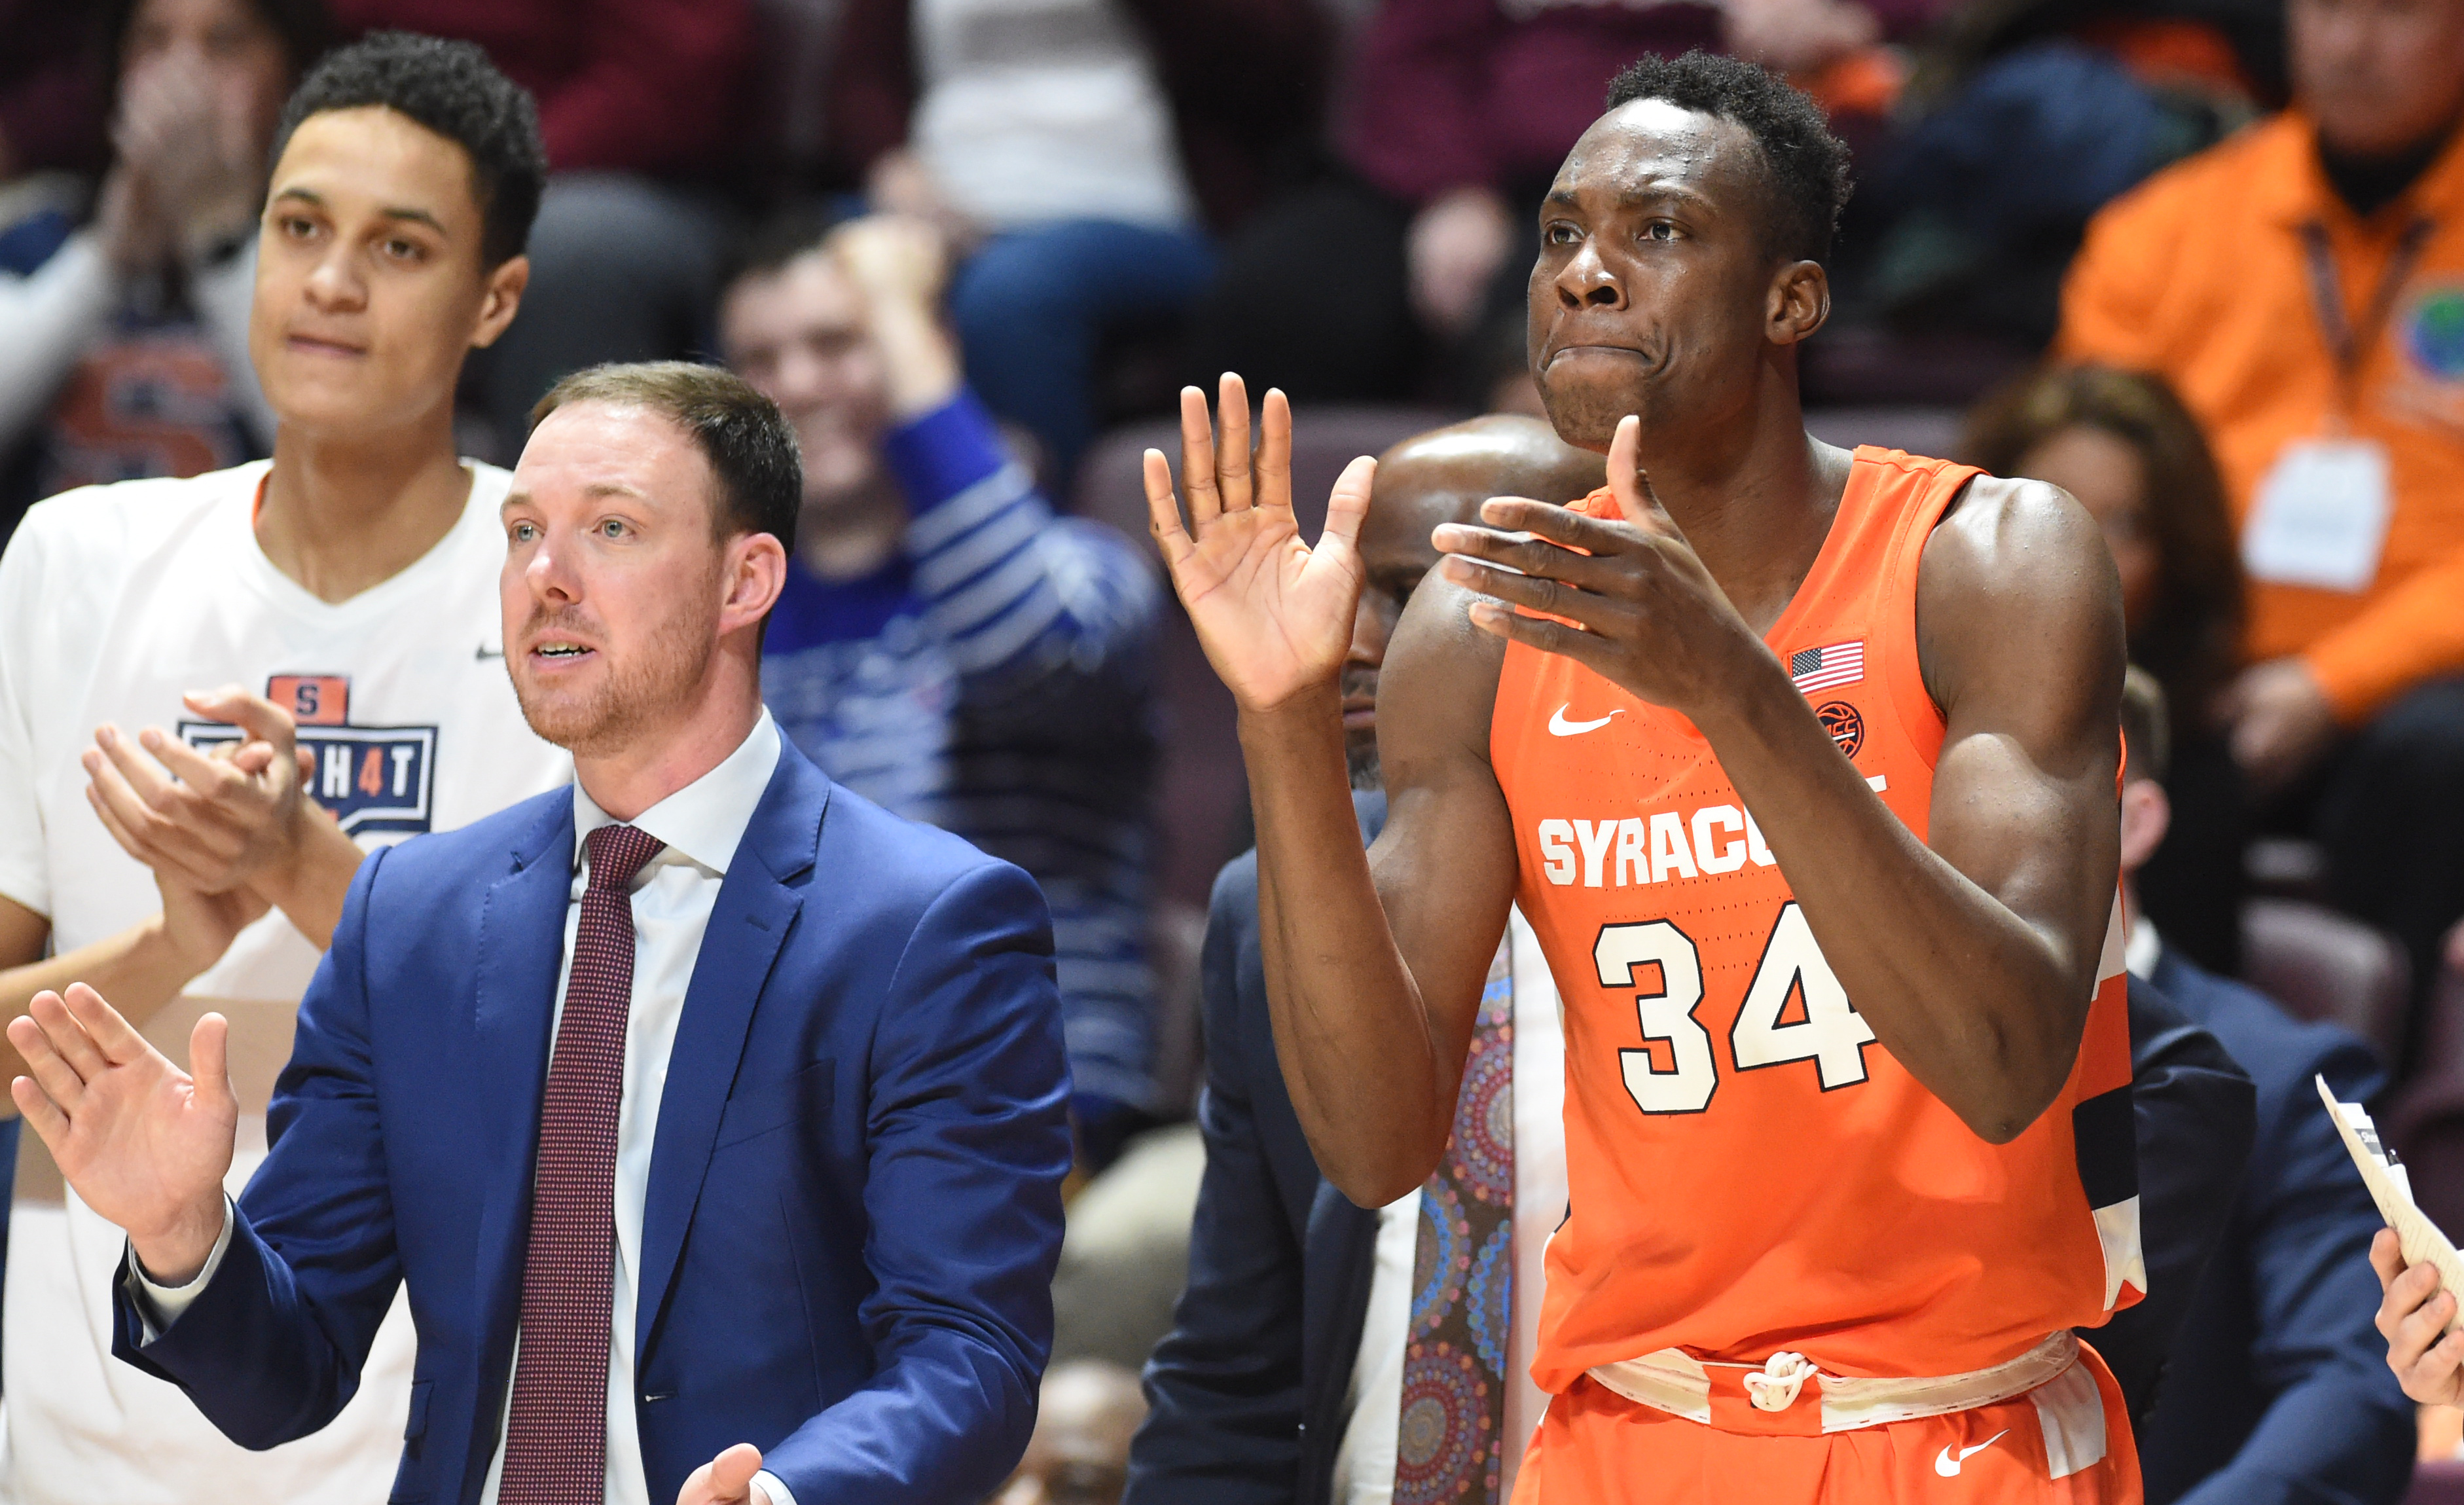 Unusual substitution on final play helps Syracuse preserve win over Virginia Tech